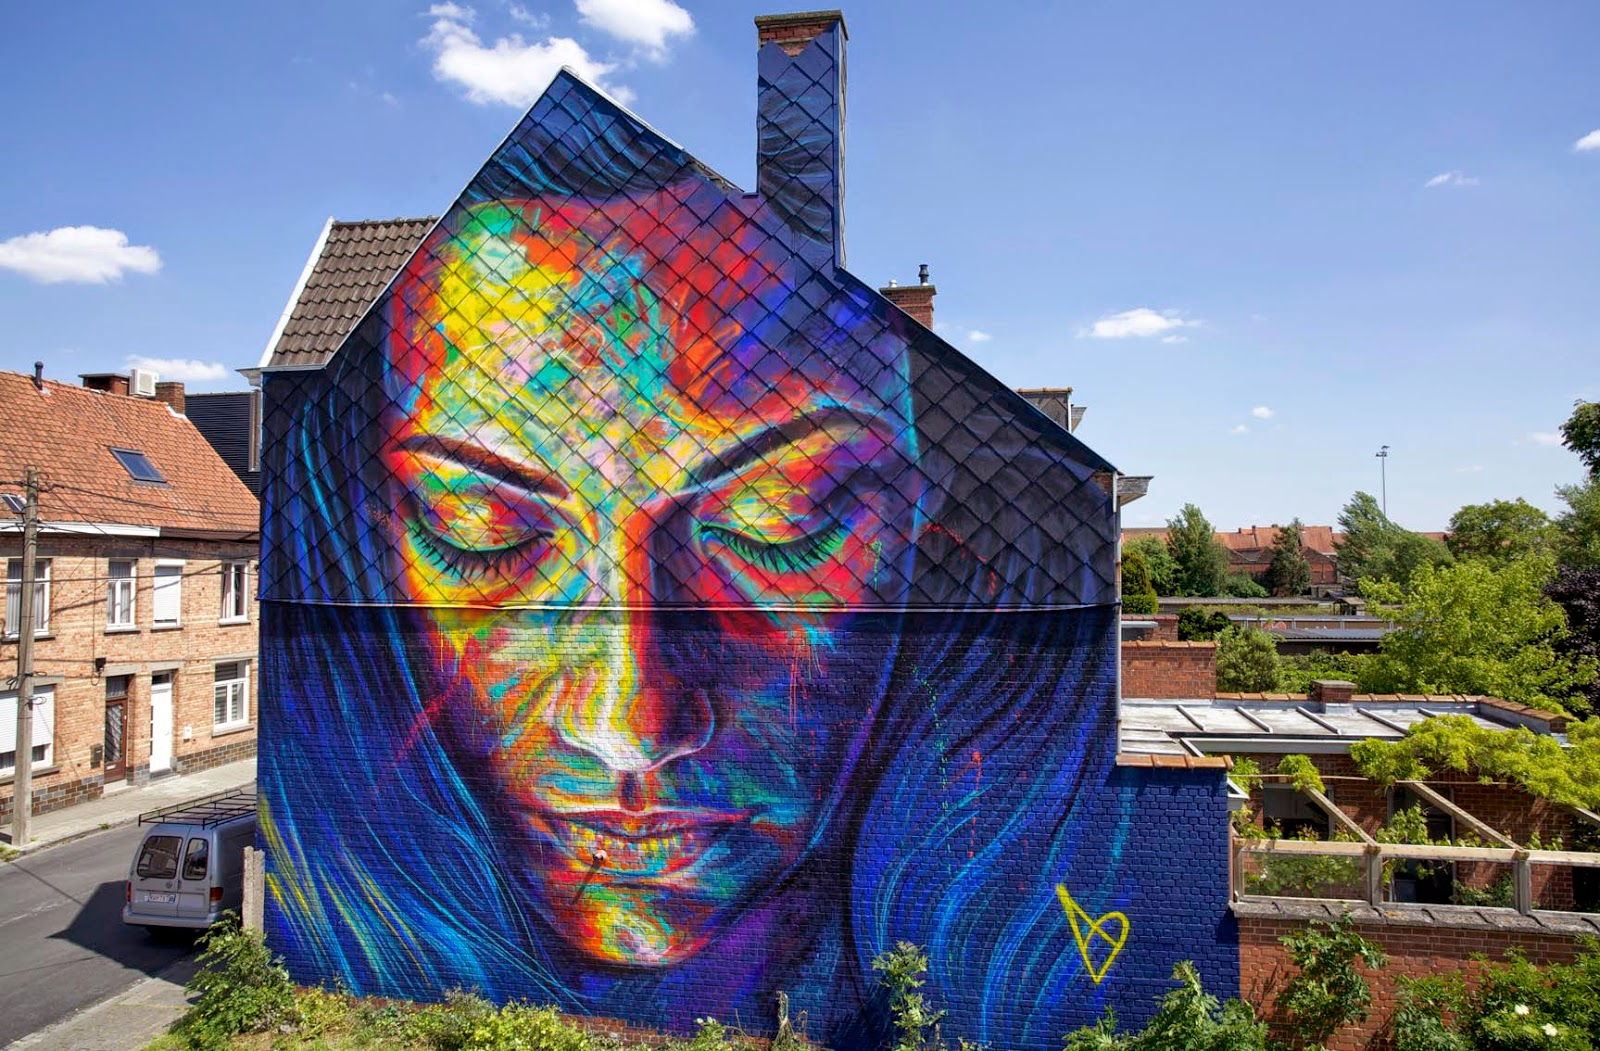 After a quick stop by Aubervilliers in France (covered), David Walker is now in Belgium where he just wrapped up this monster mural on the streets of Roeselare in Belgium.